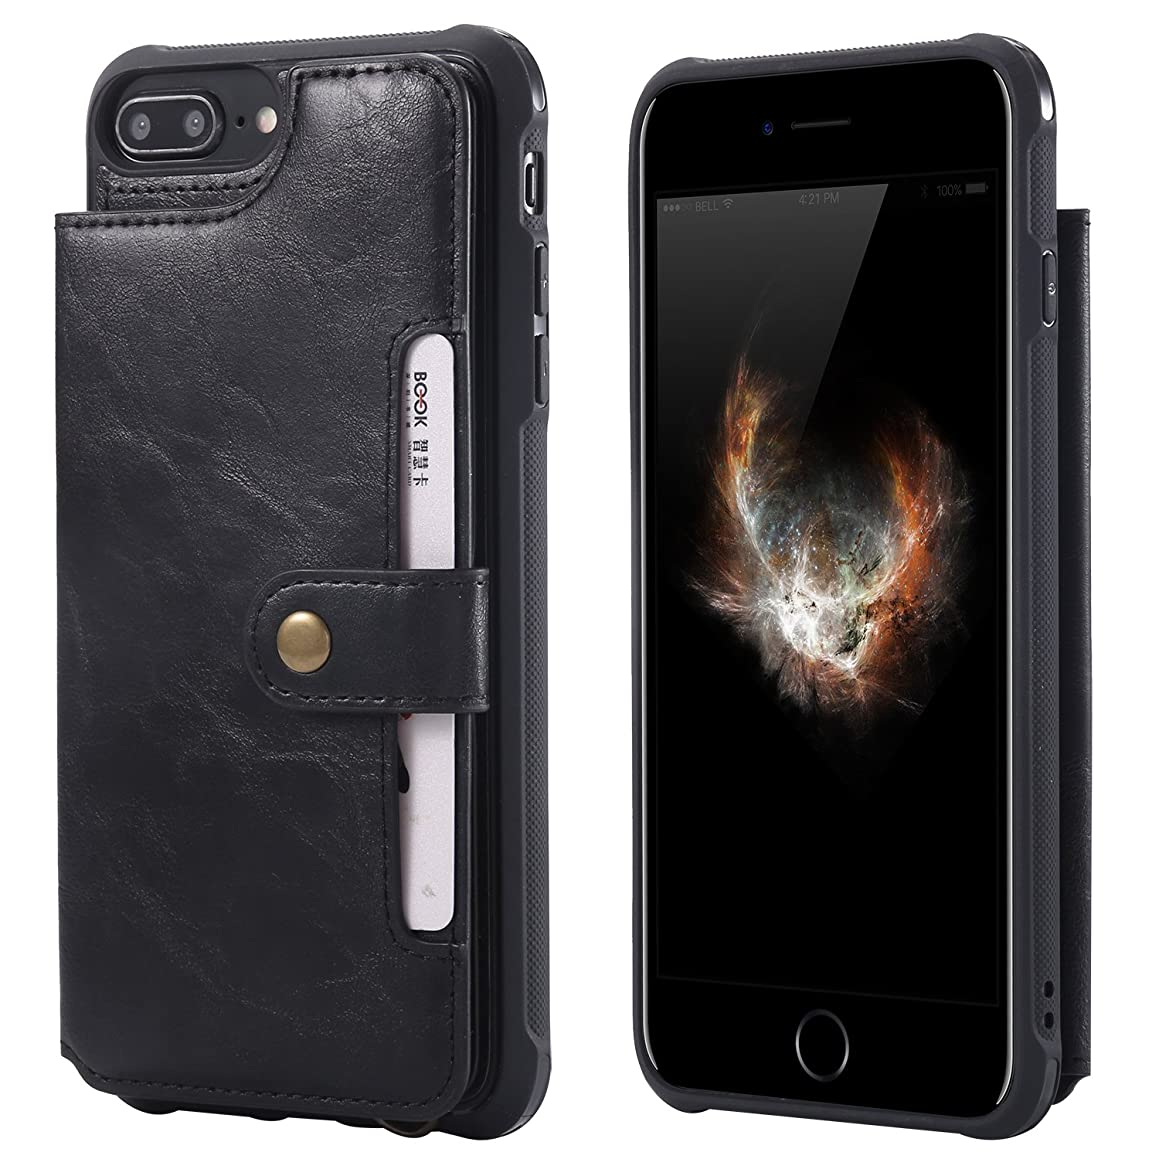 Wallet Case for iPhone 6P 7+ 8 Plus Apple,Card Cash Slot PU Leather Hand Strap Magnetic Snap Protective Cover Durable Shell Kickstand Soft Black Men Women